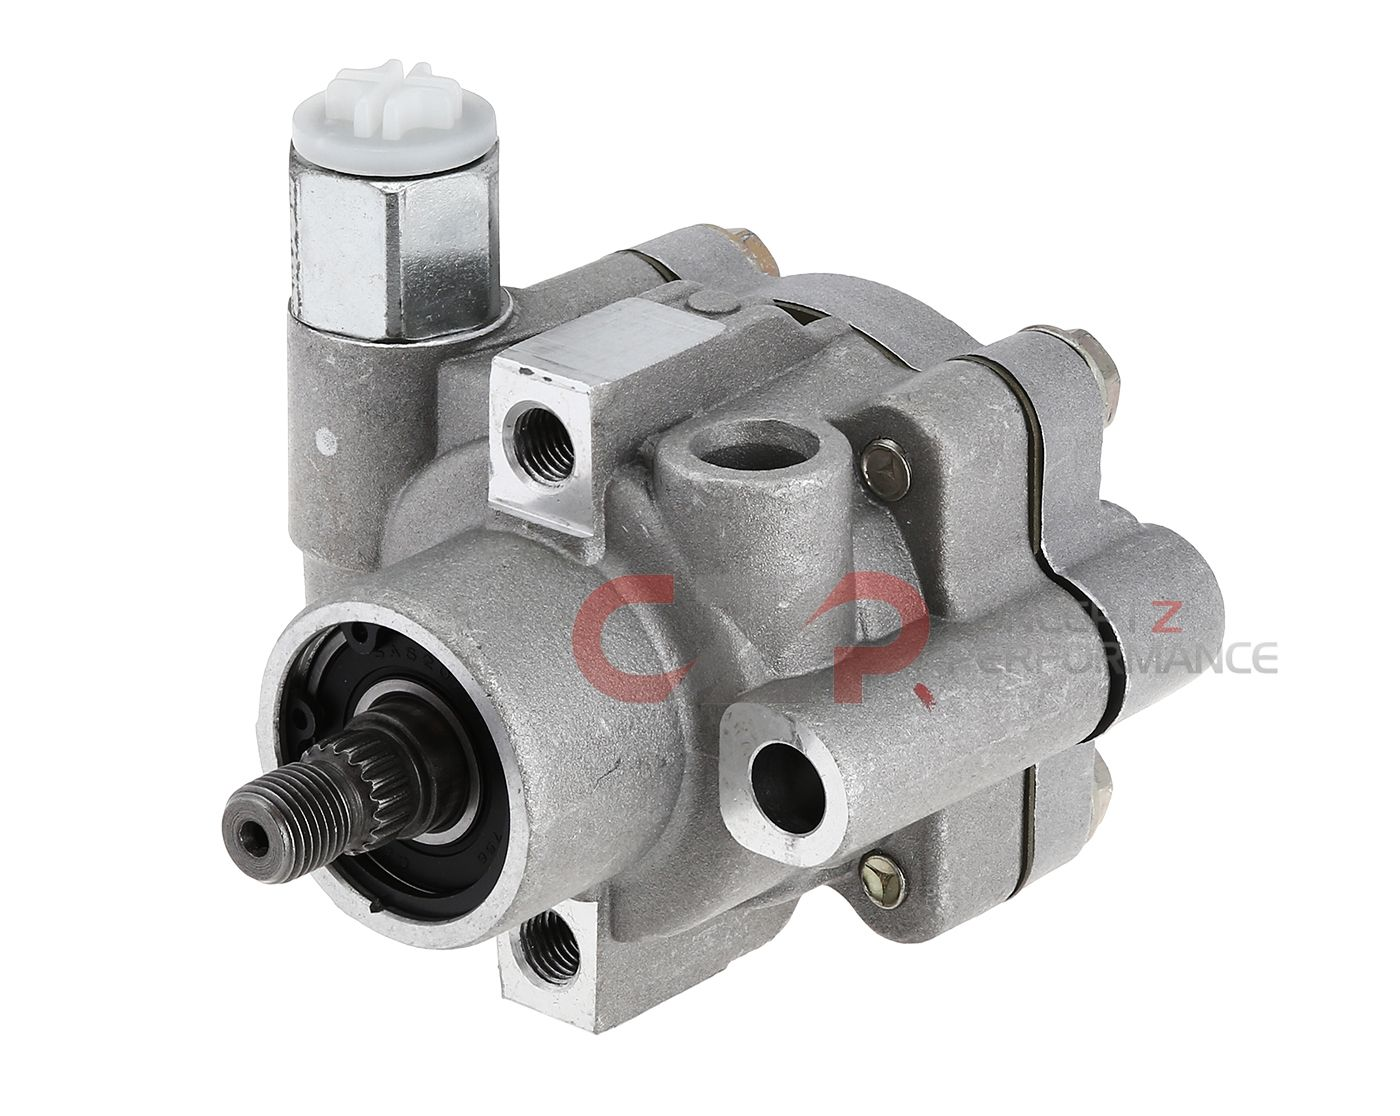 Standard Power Steering Pump - Nissan 300ZX 90-96 Non-Turbo NA / 94-96 Twin Turbo TT Z32